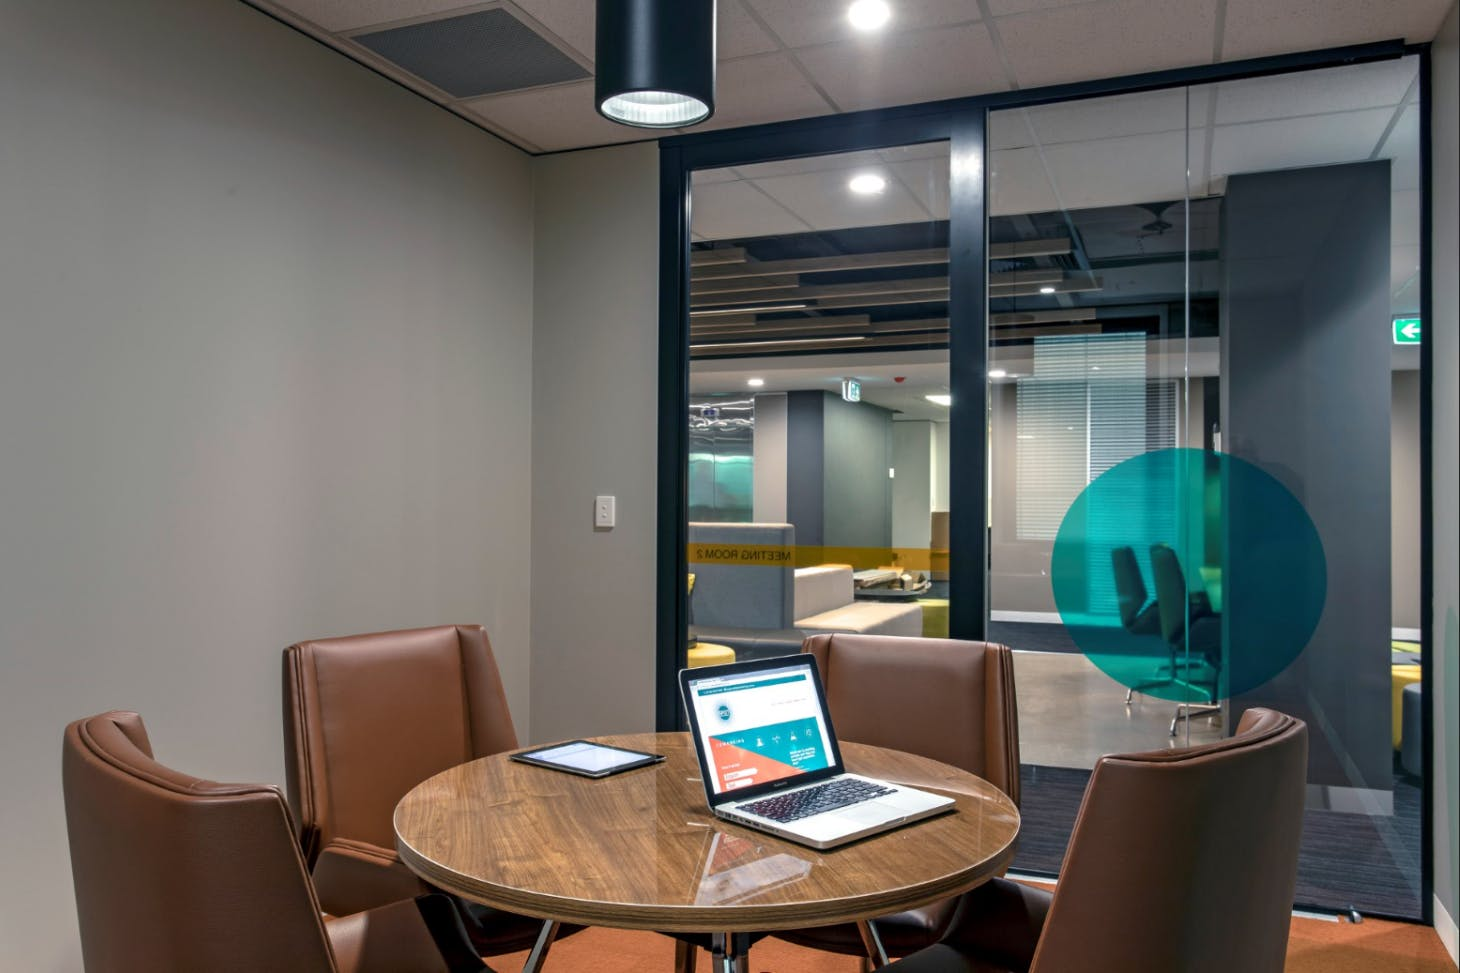 Suite 12, serviced office at Spot Co-Working, image 4